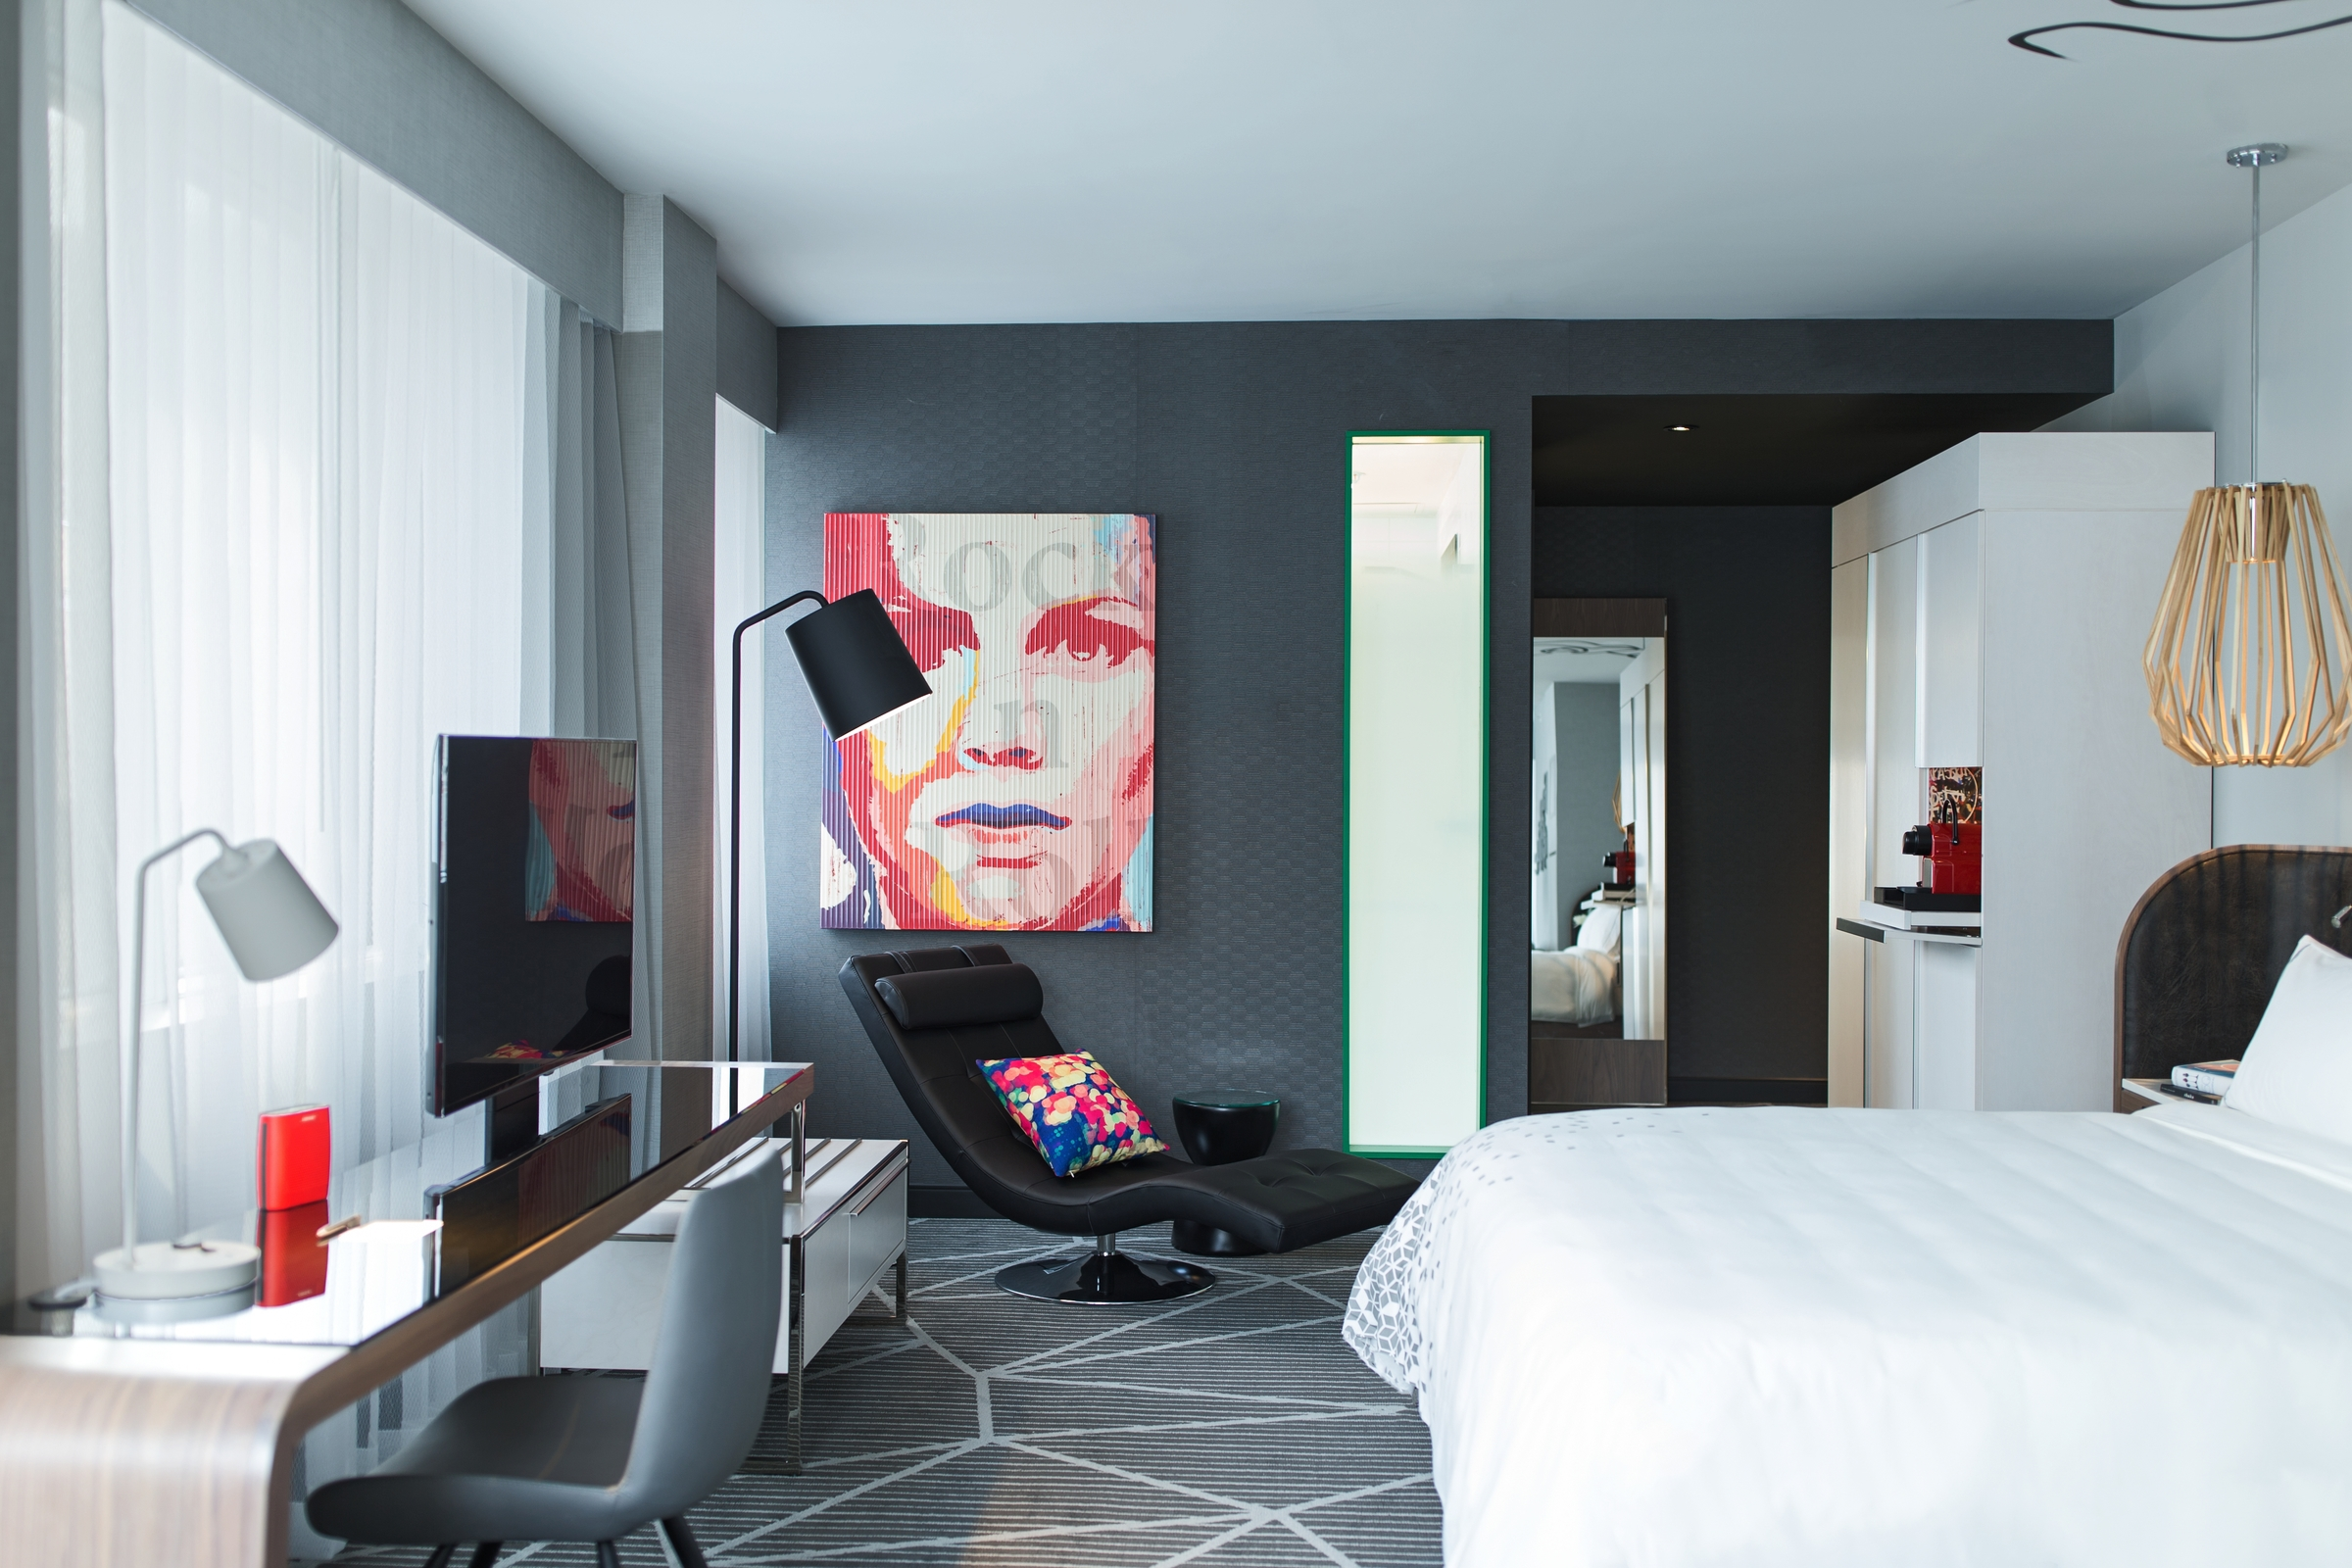 The rooms are colourful, funky and design-oriented